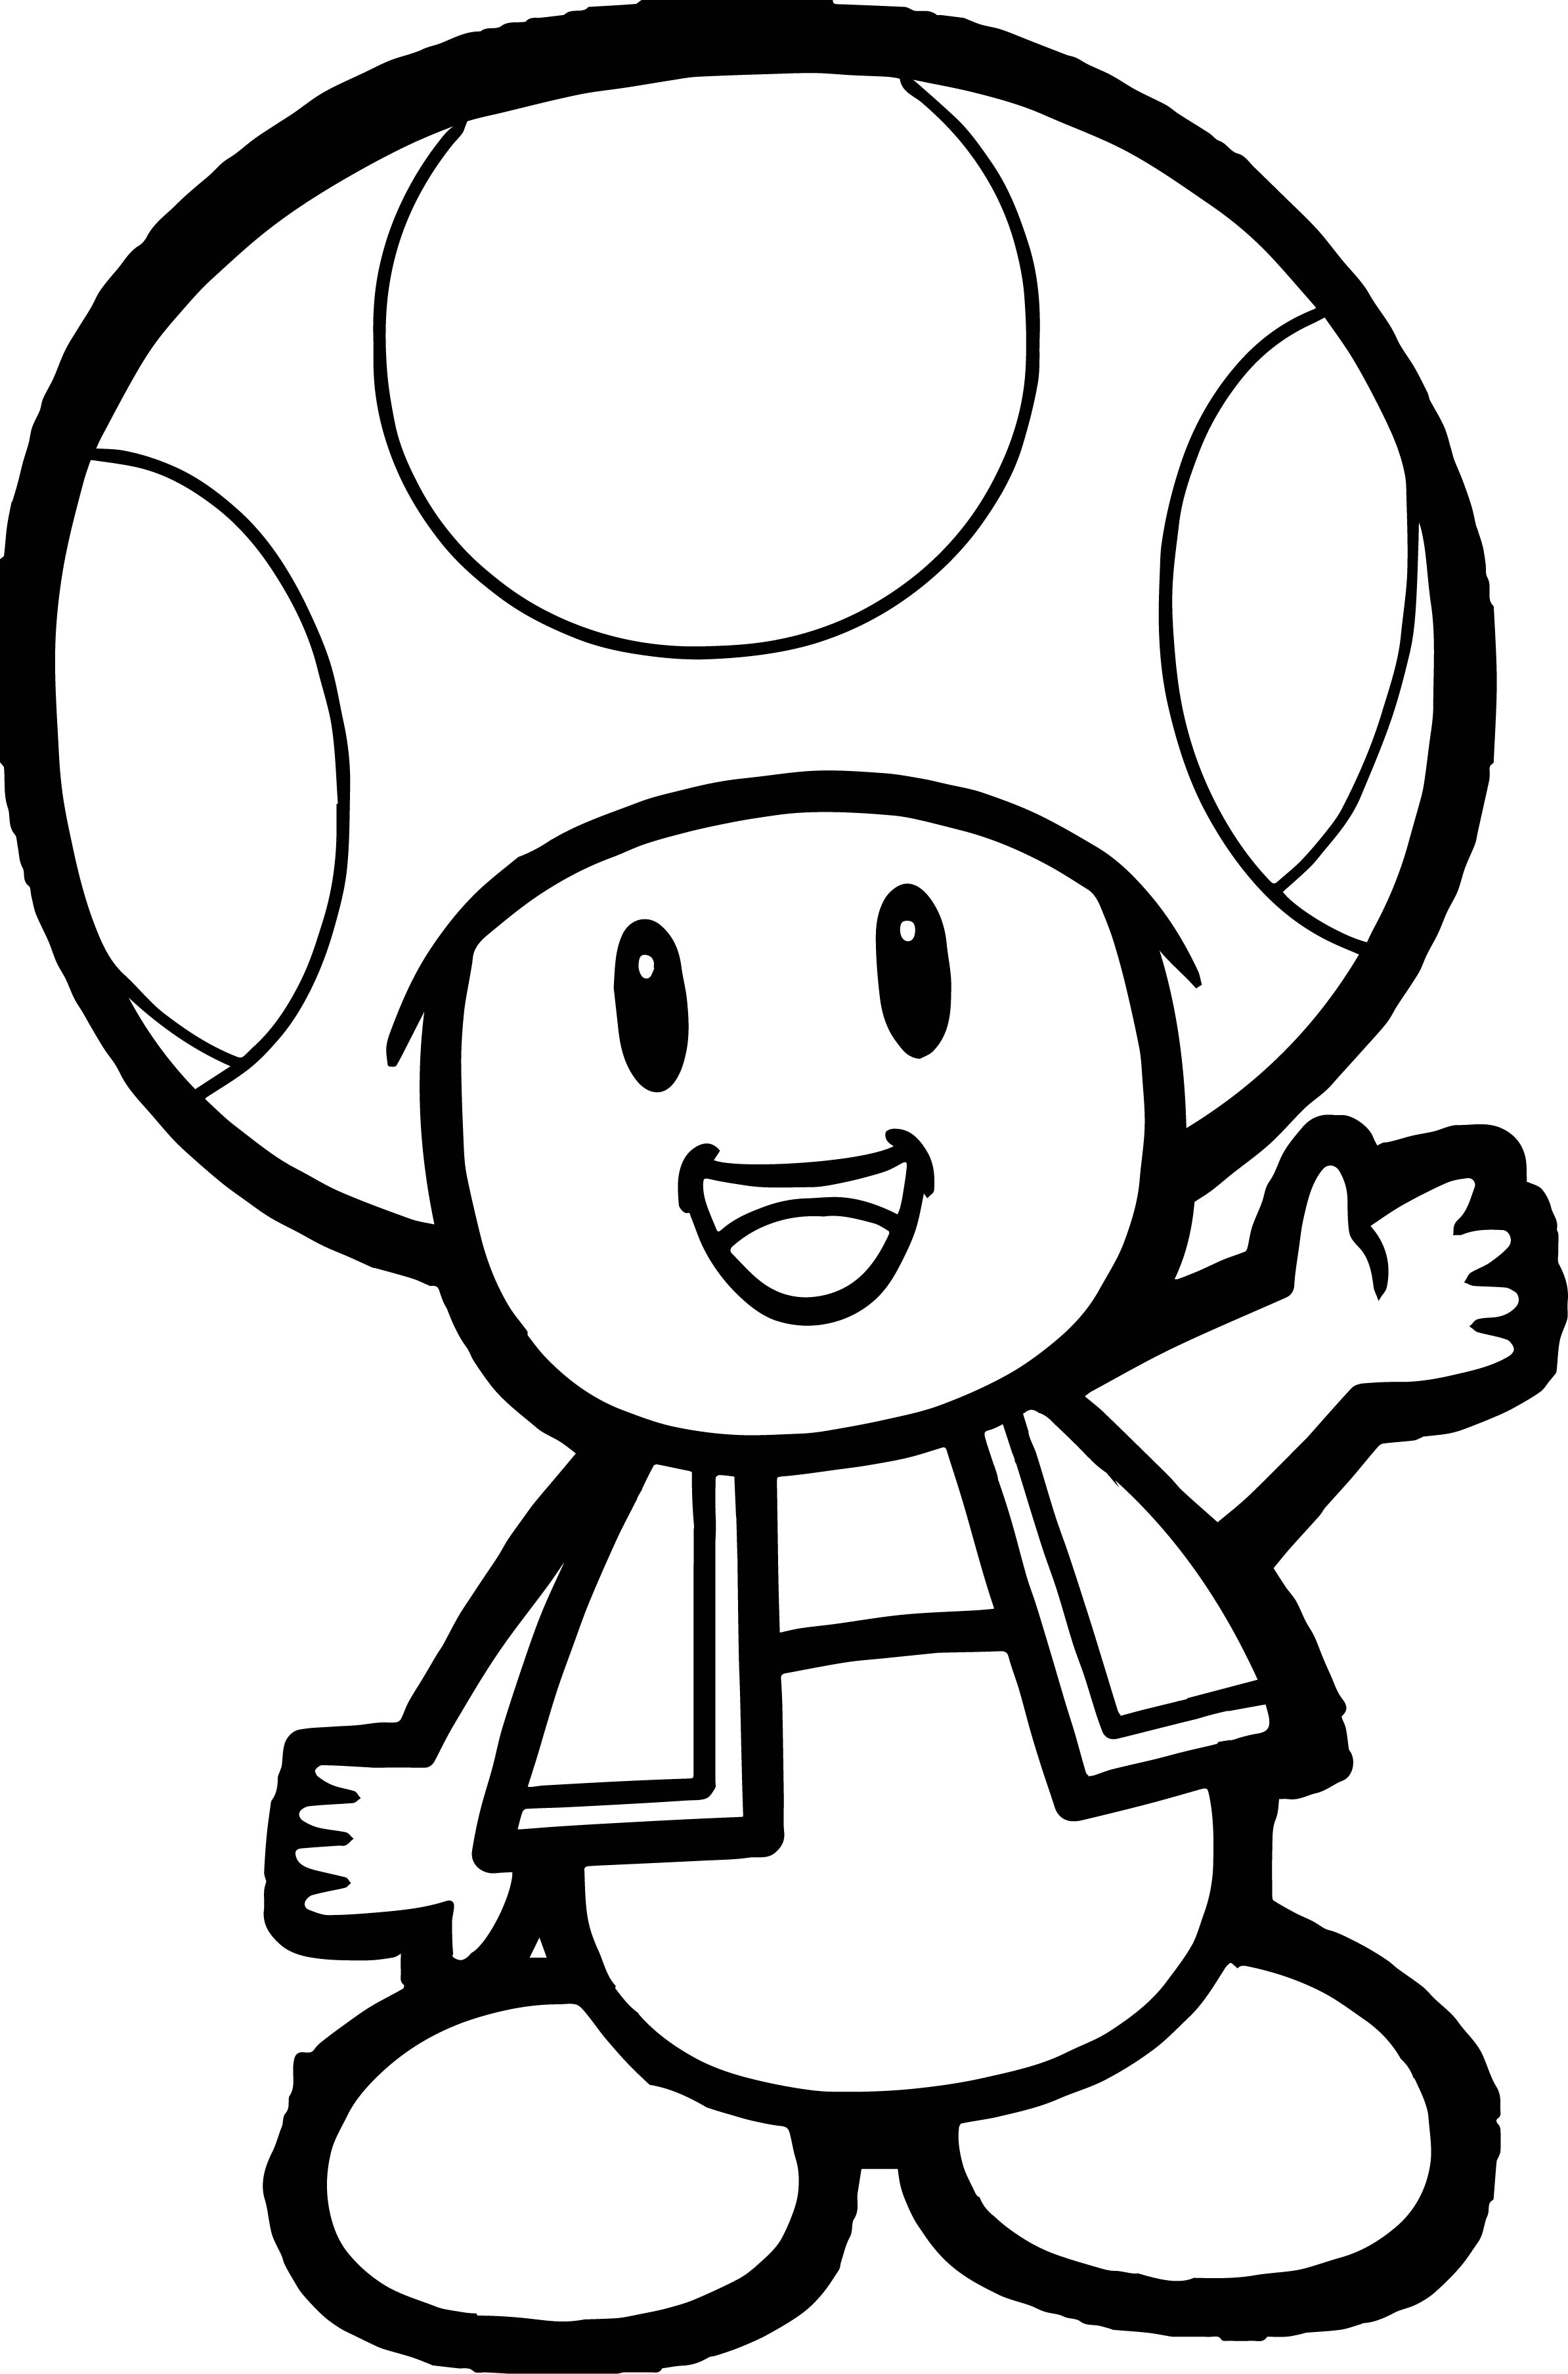 Goomba Coloring Page At Getcolorings